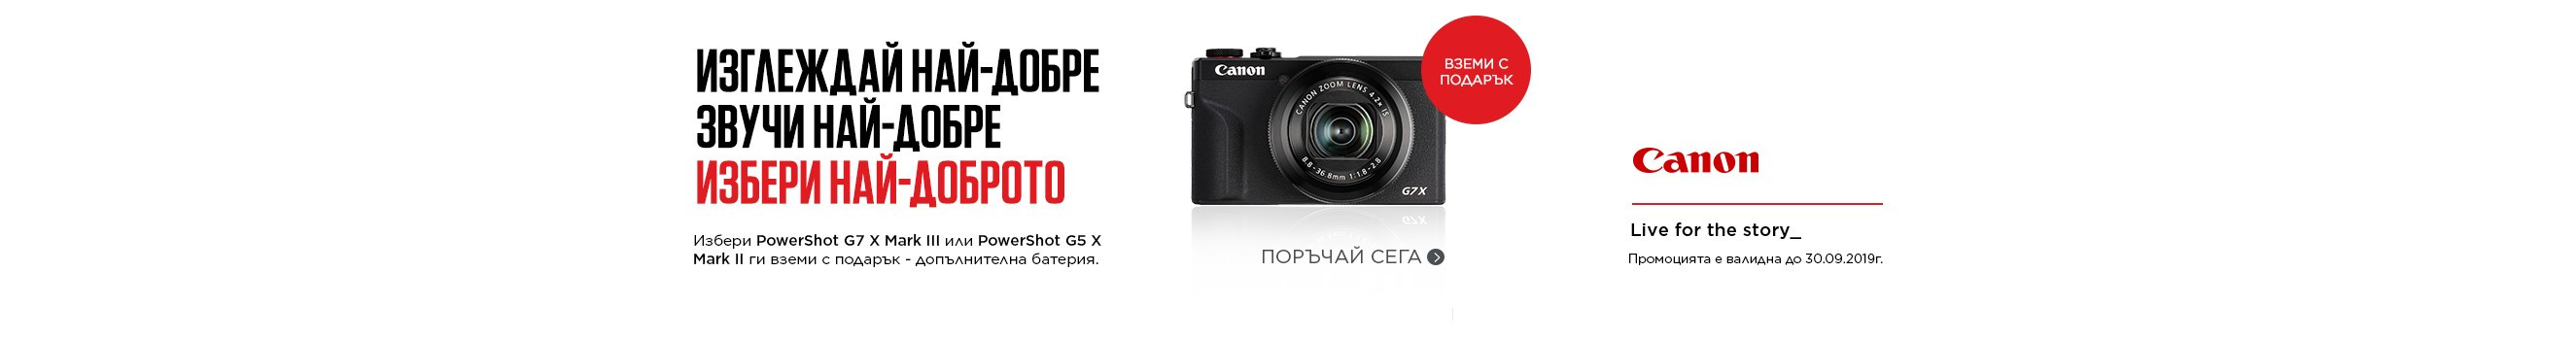 New Canon G Cameras plus Battery